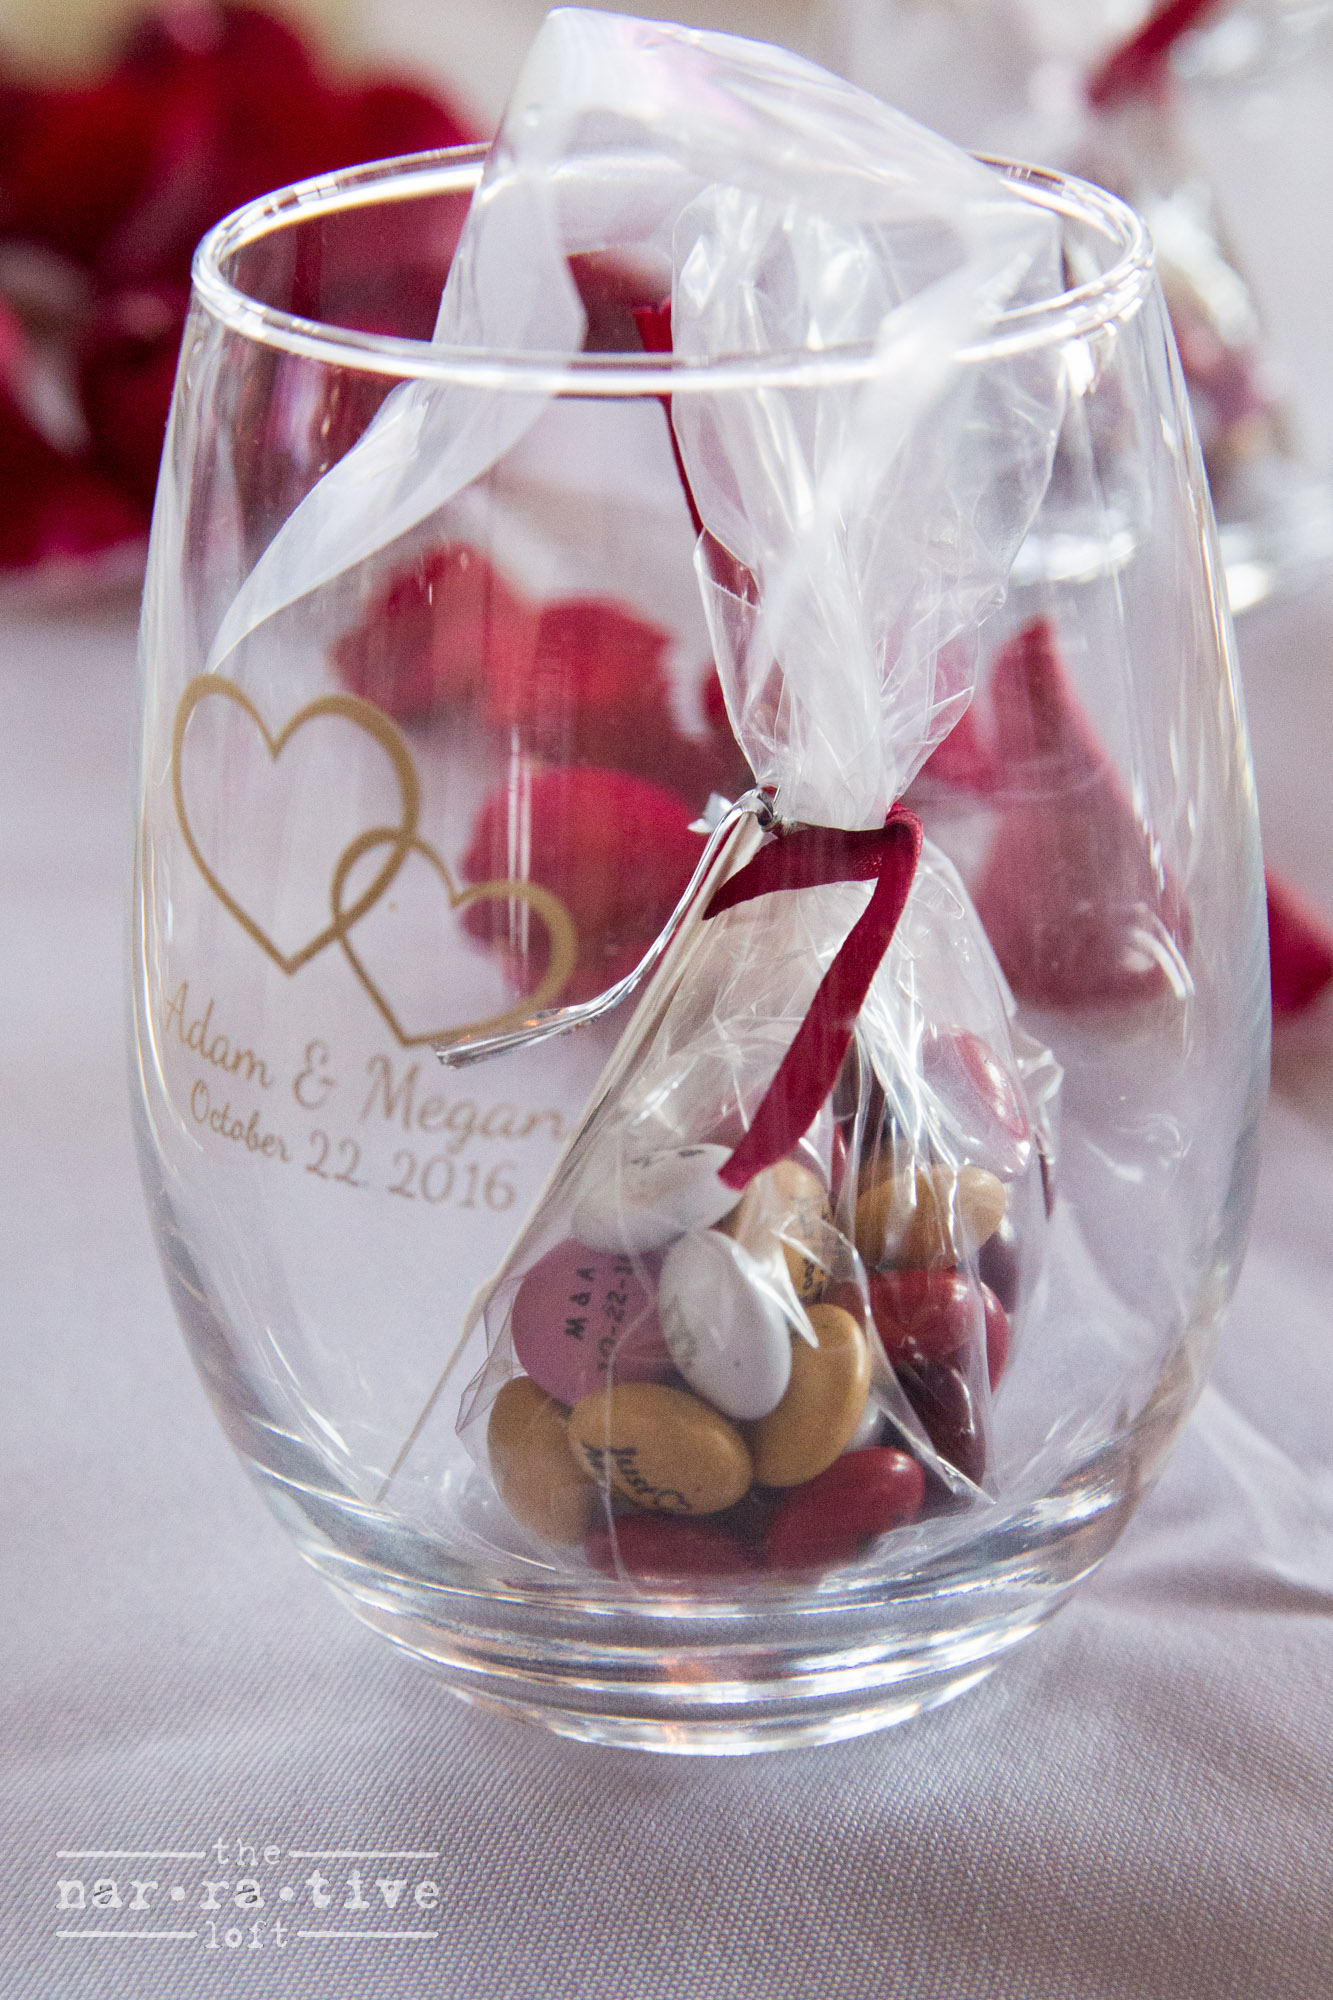 Personalized glasses plus M&M's were given to guests to remember the special day.